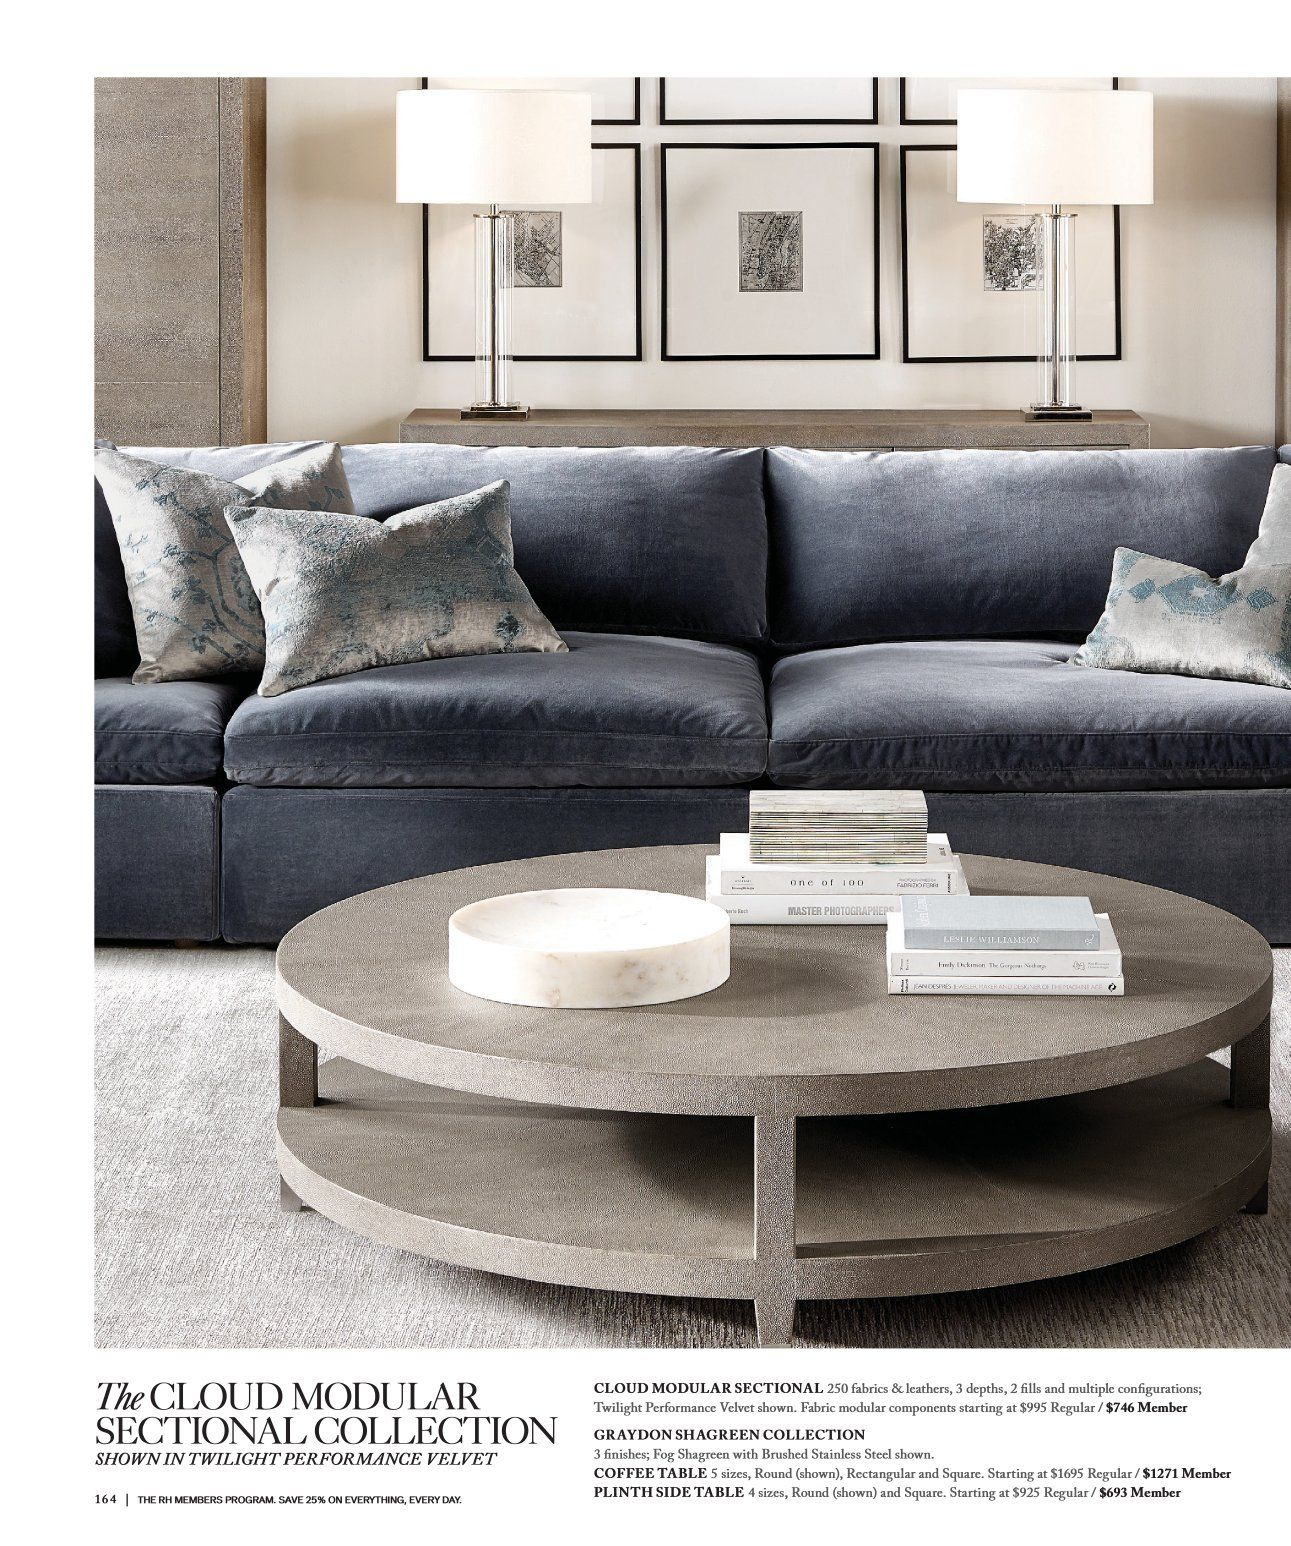 Rh Source Books Knotty Pine Furniture Companies Restoration Hardware Beautiful Interiors Color